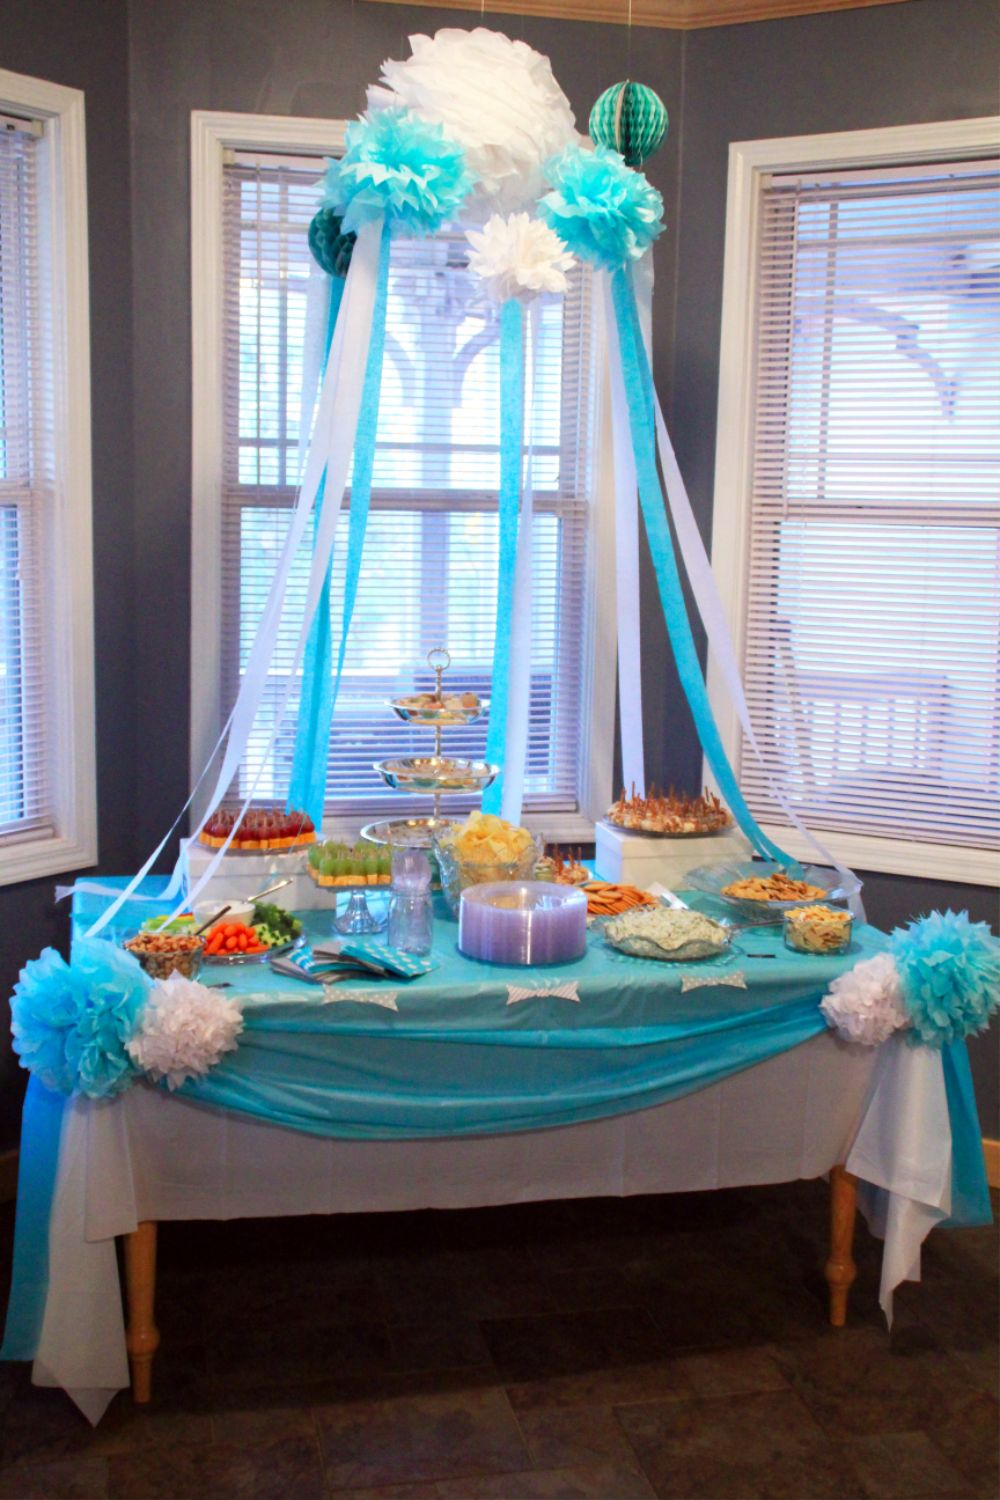 Baby shower decoration ideas southern couture for Baby shower ceiling decoration ideas